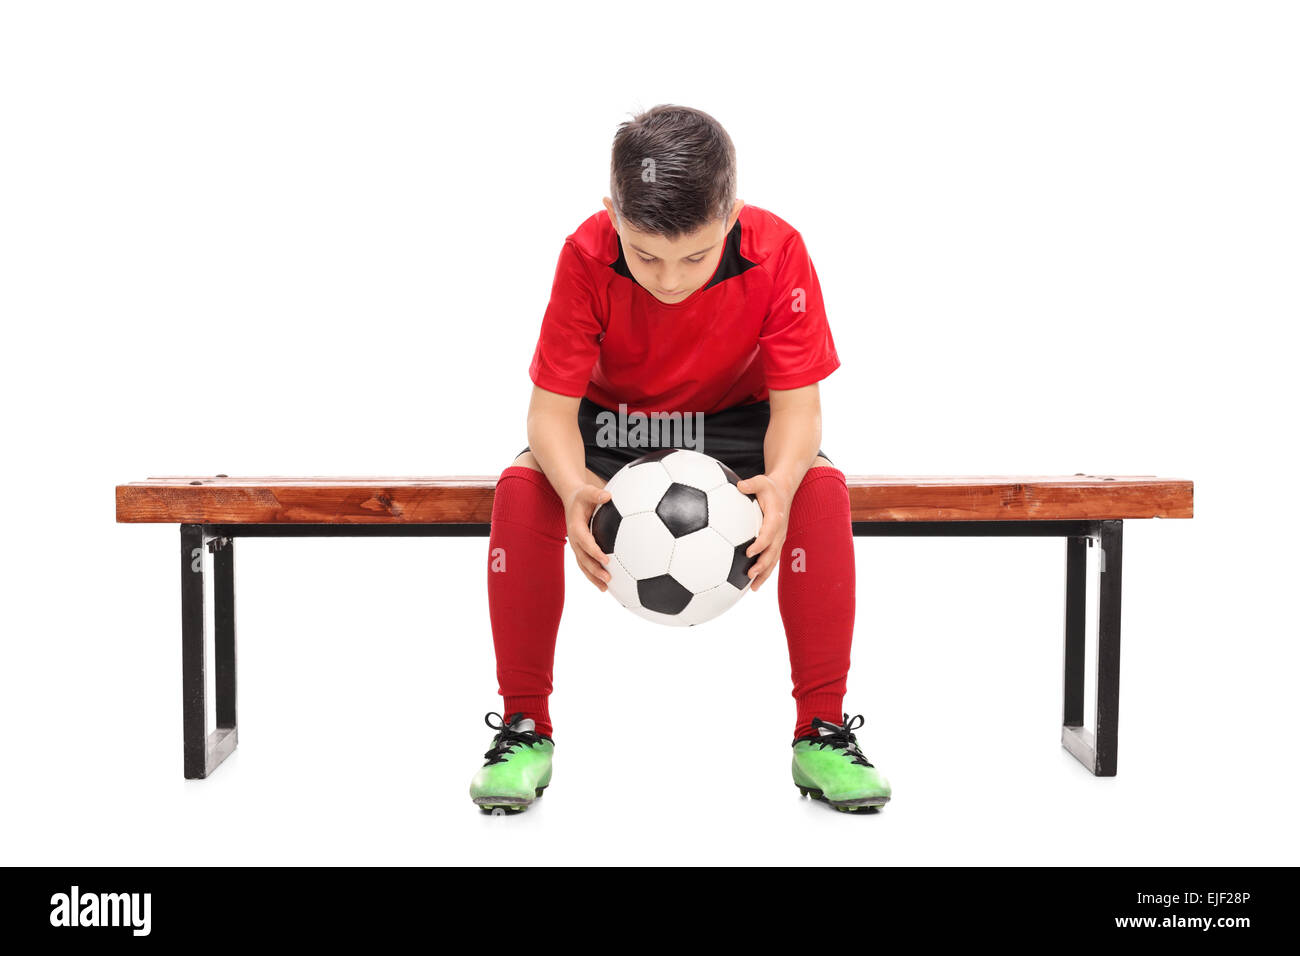 Worried little boy in red football shirt sitting on a bench and holding a ball isolated on white background - Stock Image